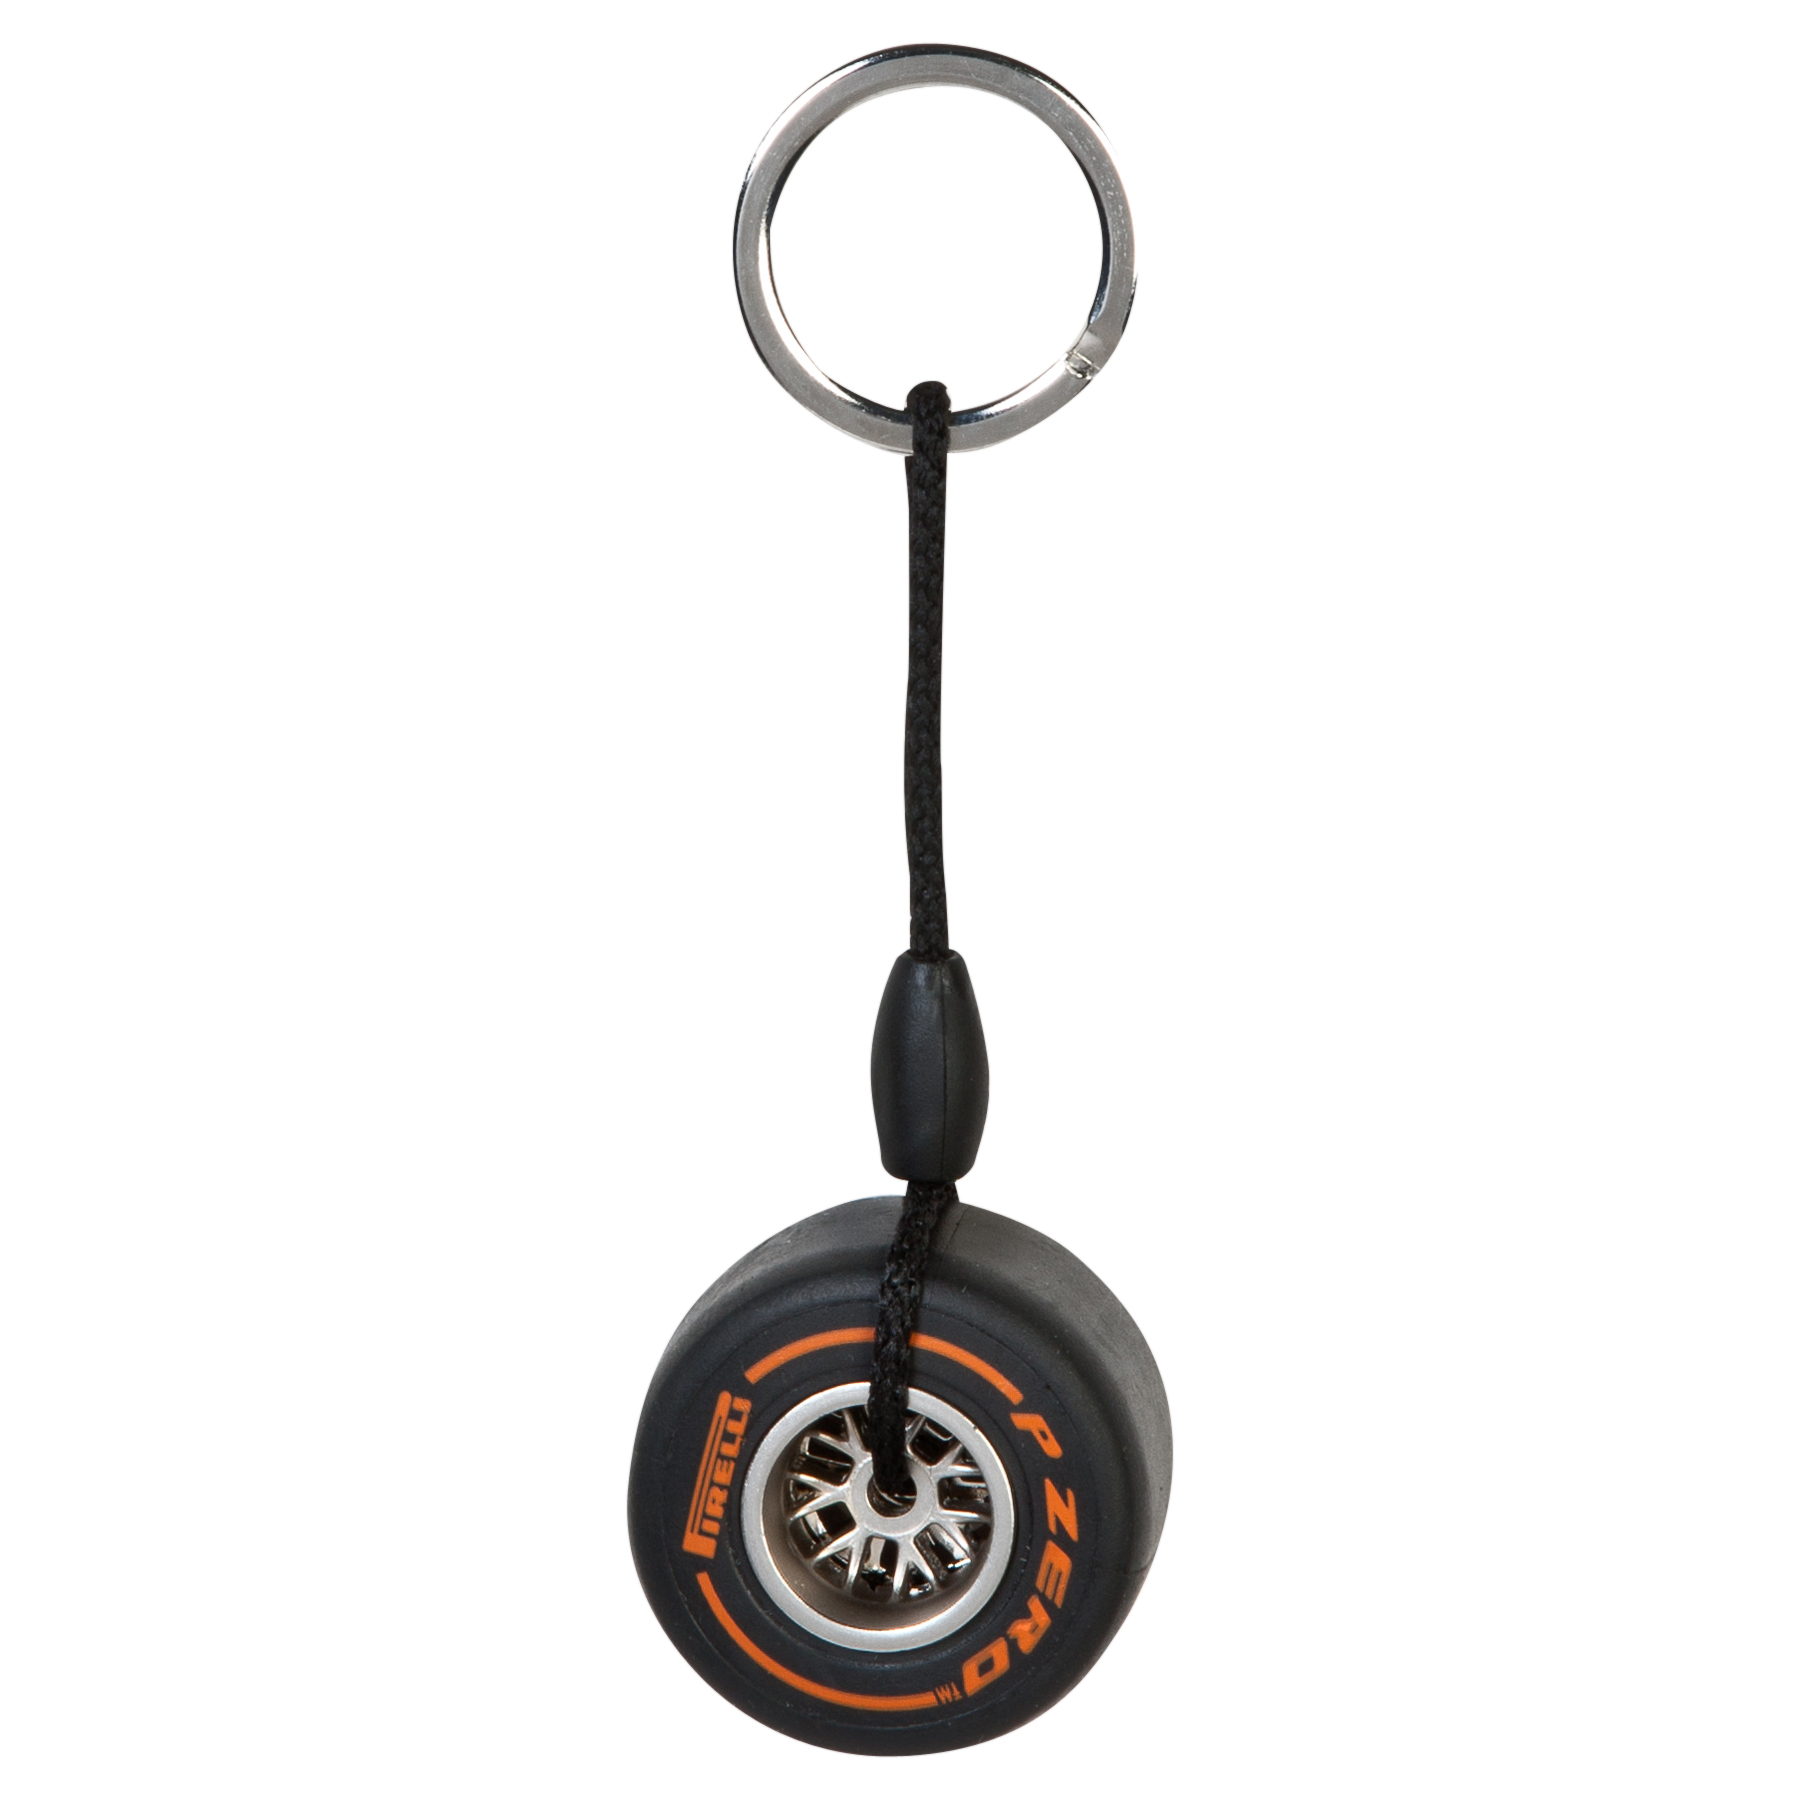 Pirelli Rim Tyre Key Ring - Hard Orange